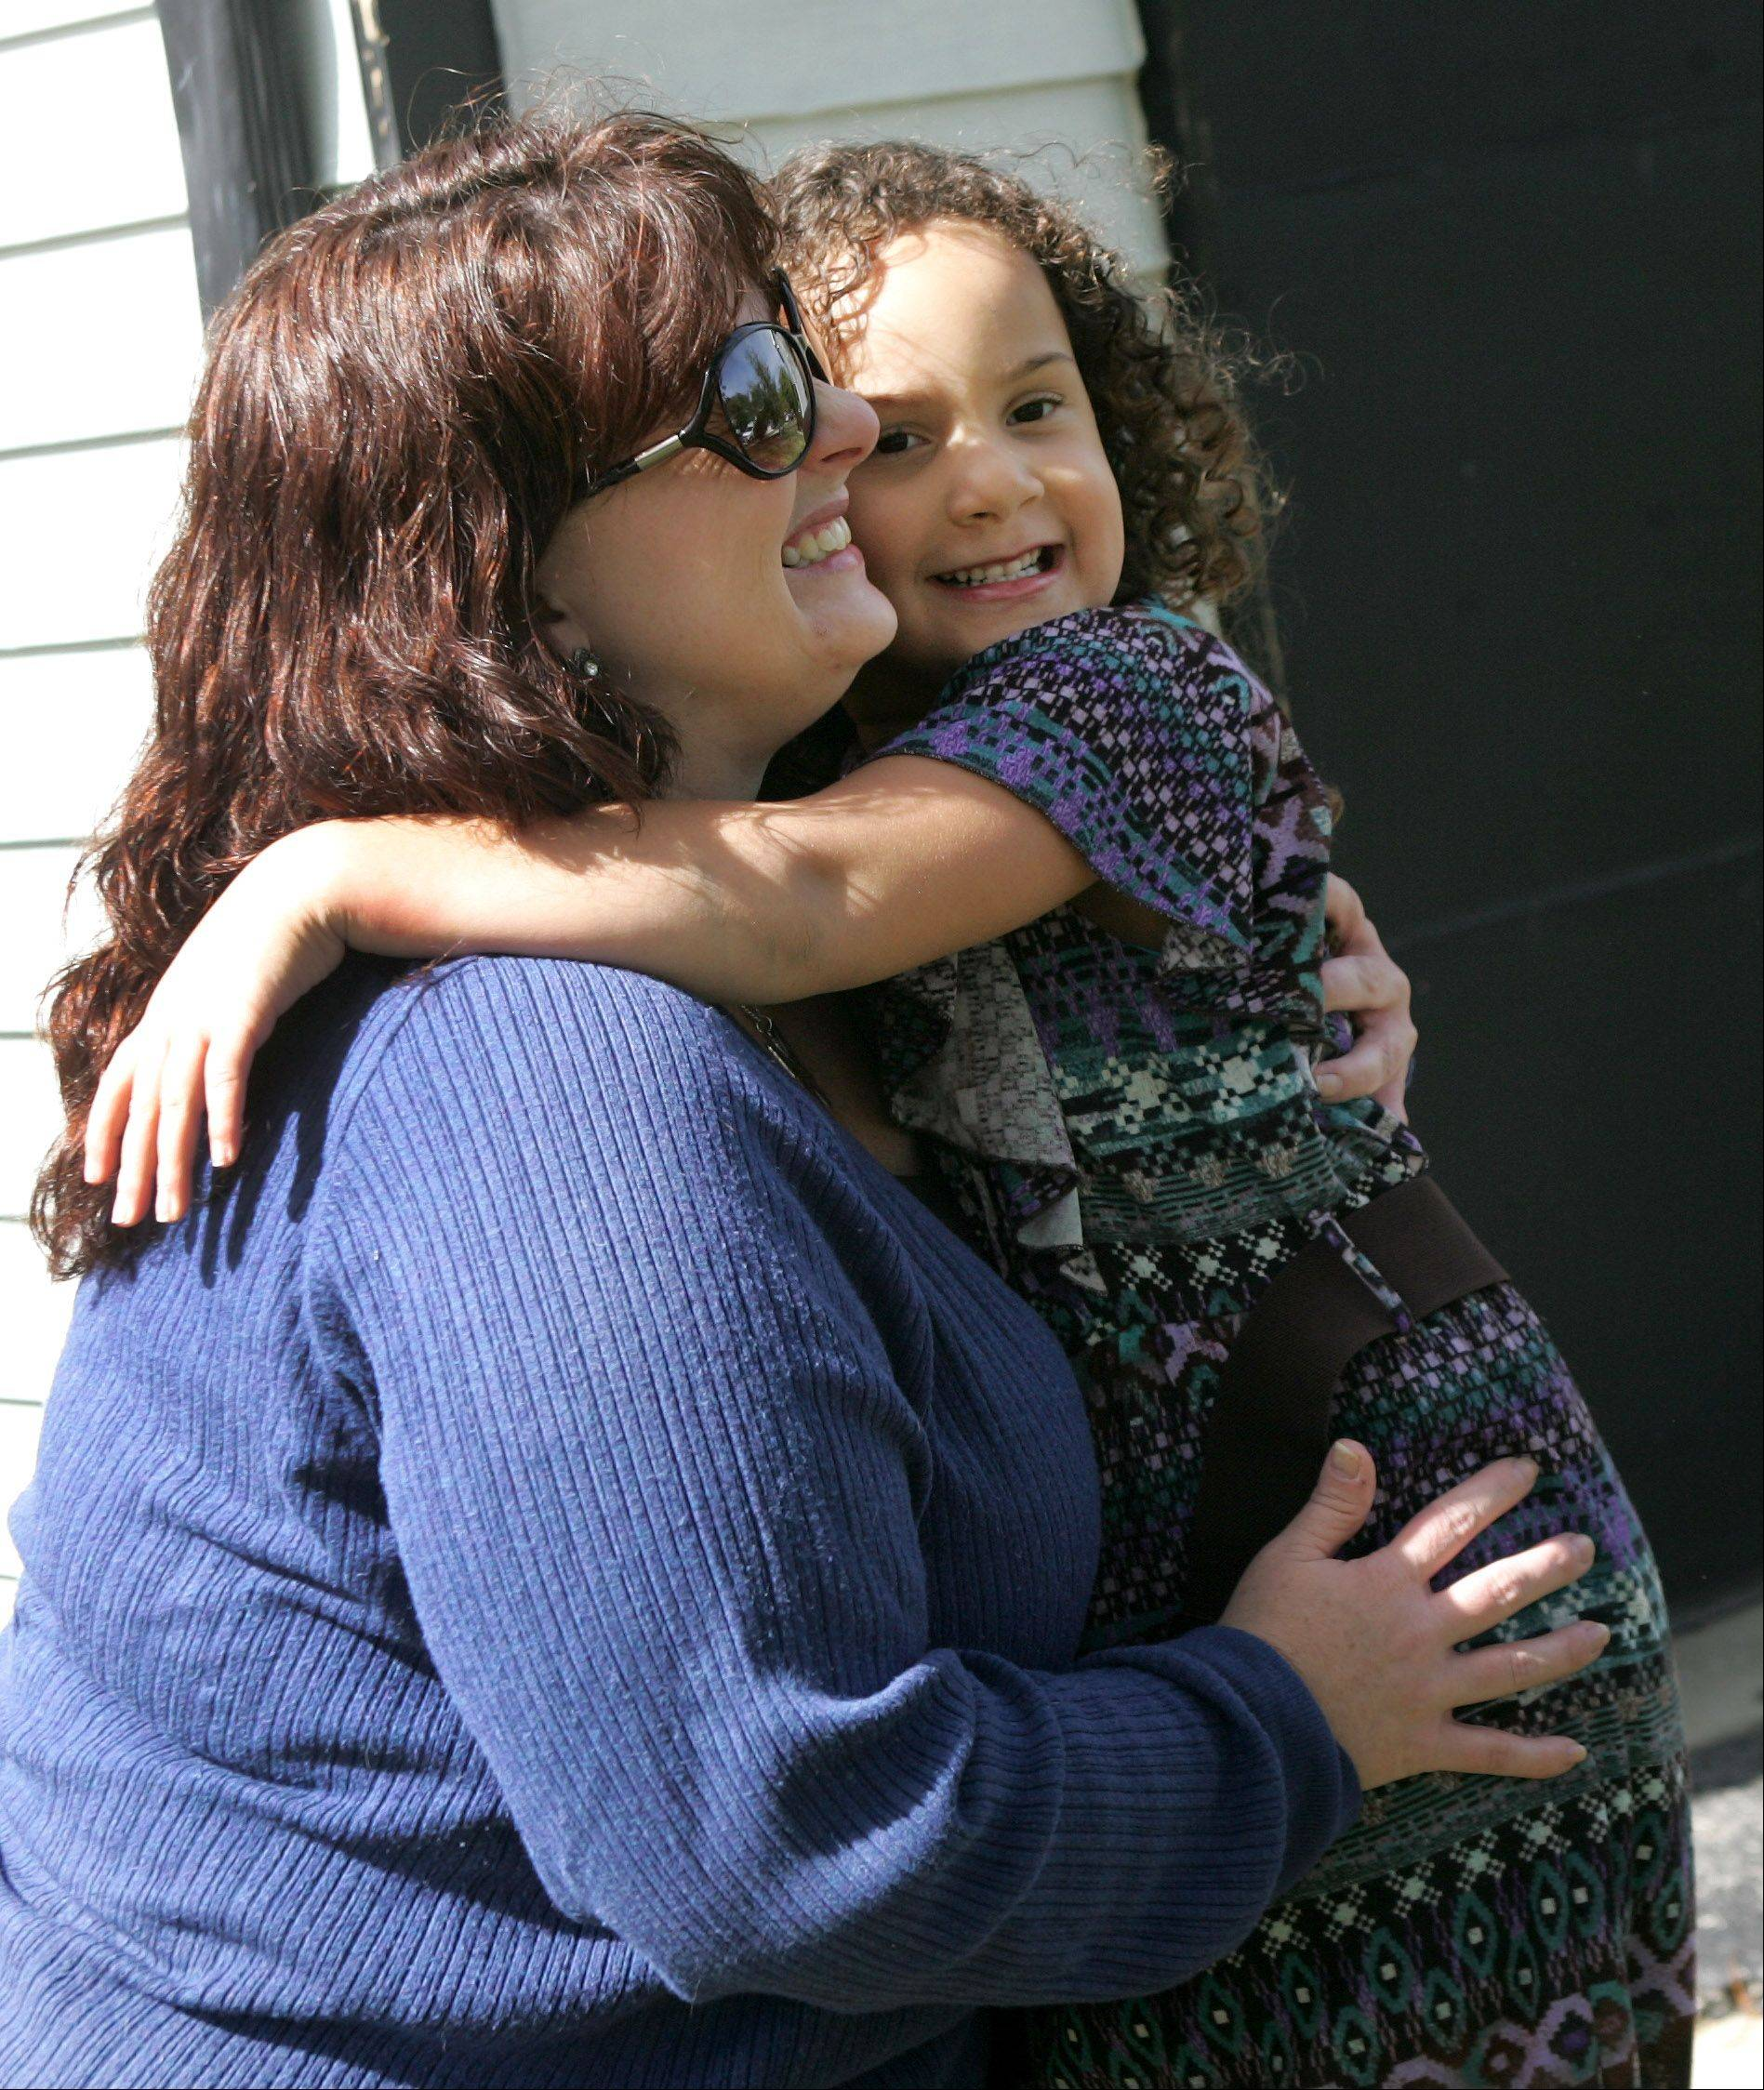 Bev Horne/bhorne@dailyherald.comDiana Jensen of Aurora gives her daughter Livia, 4, a hug. Livia helped her mom by calling 911 for her last Sunday after she suddenly felt intense pain.